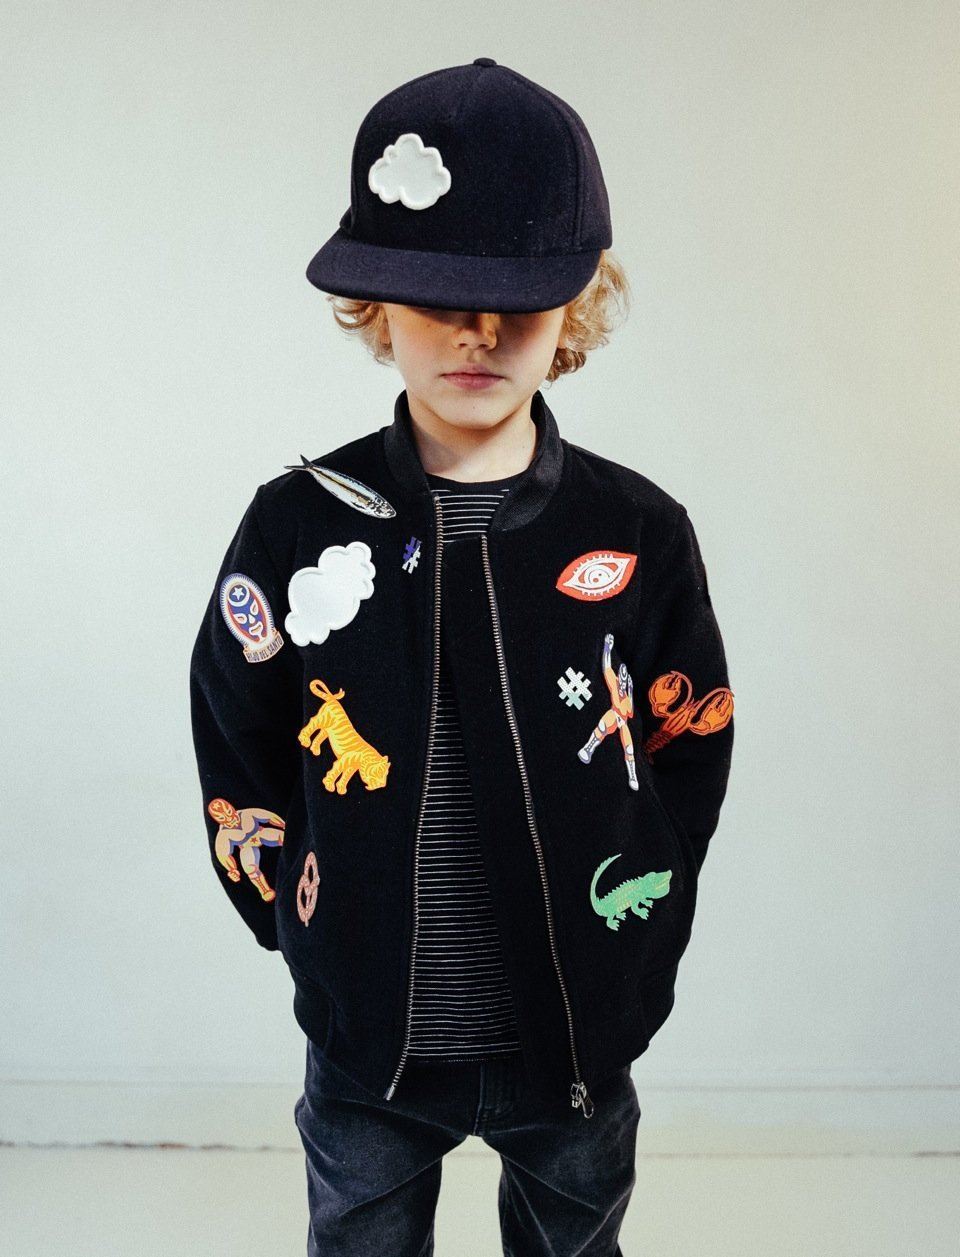 13 ways to personalize your kids' clothes with cool